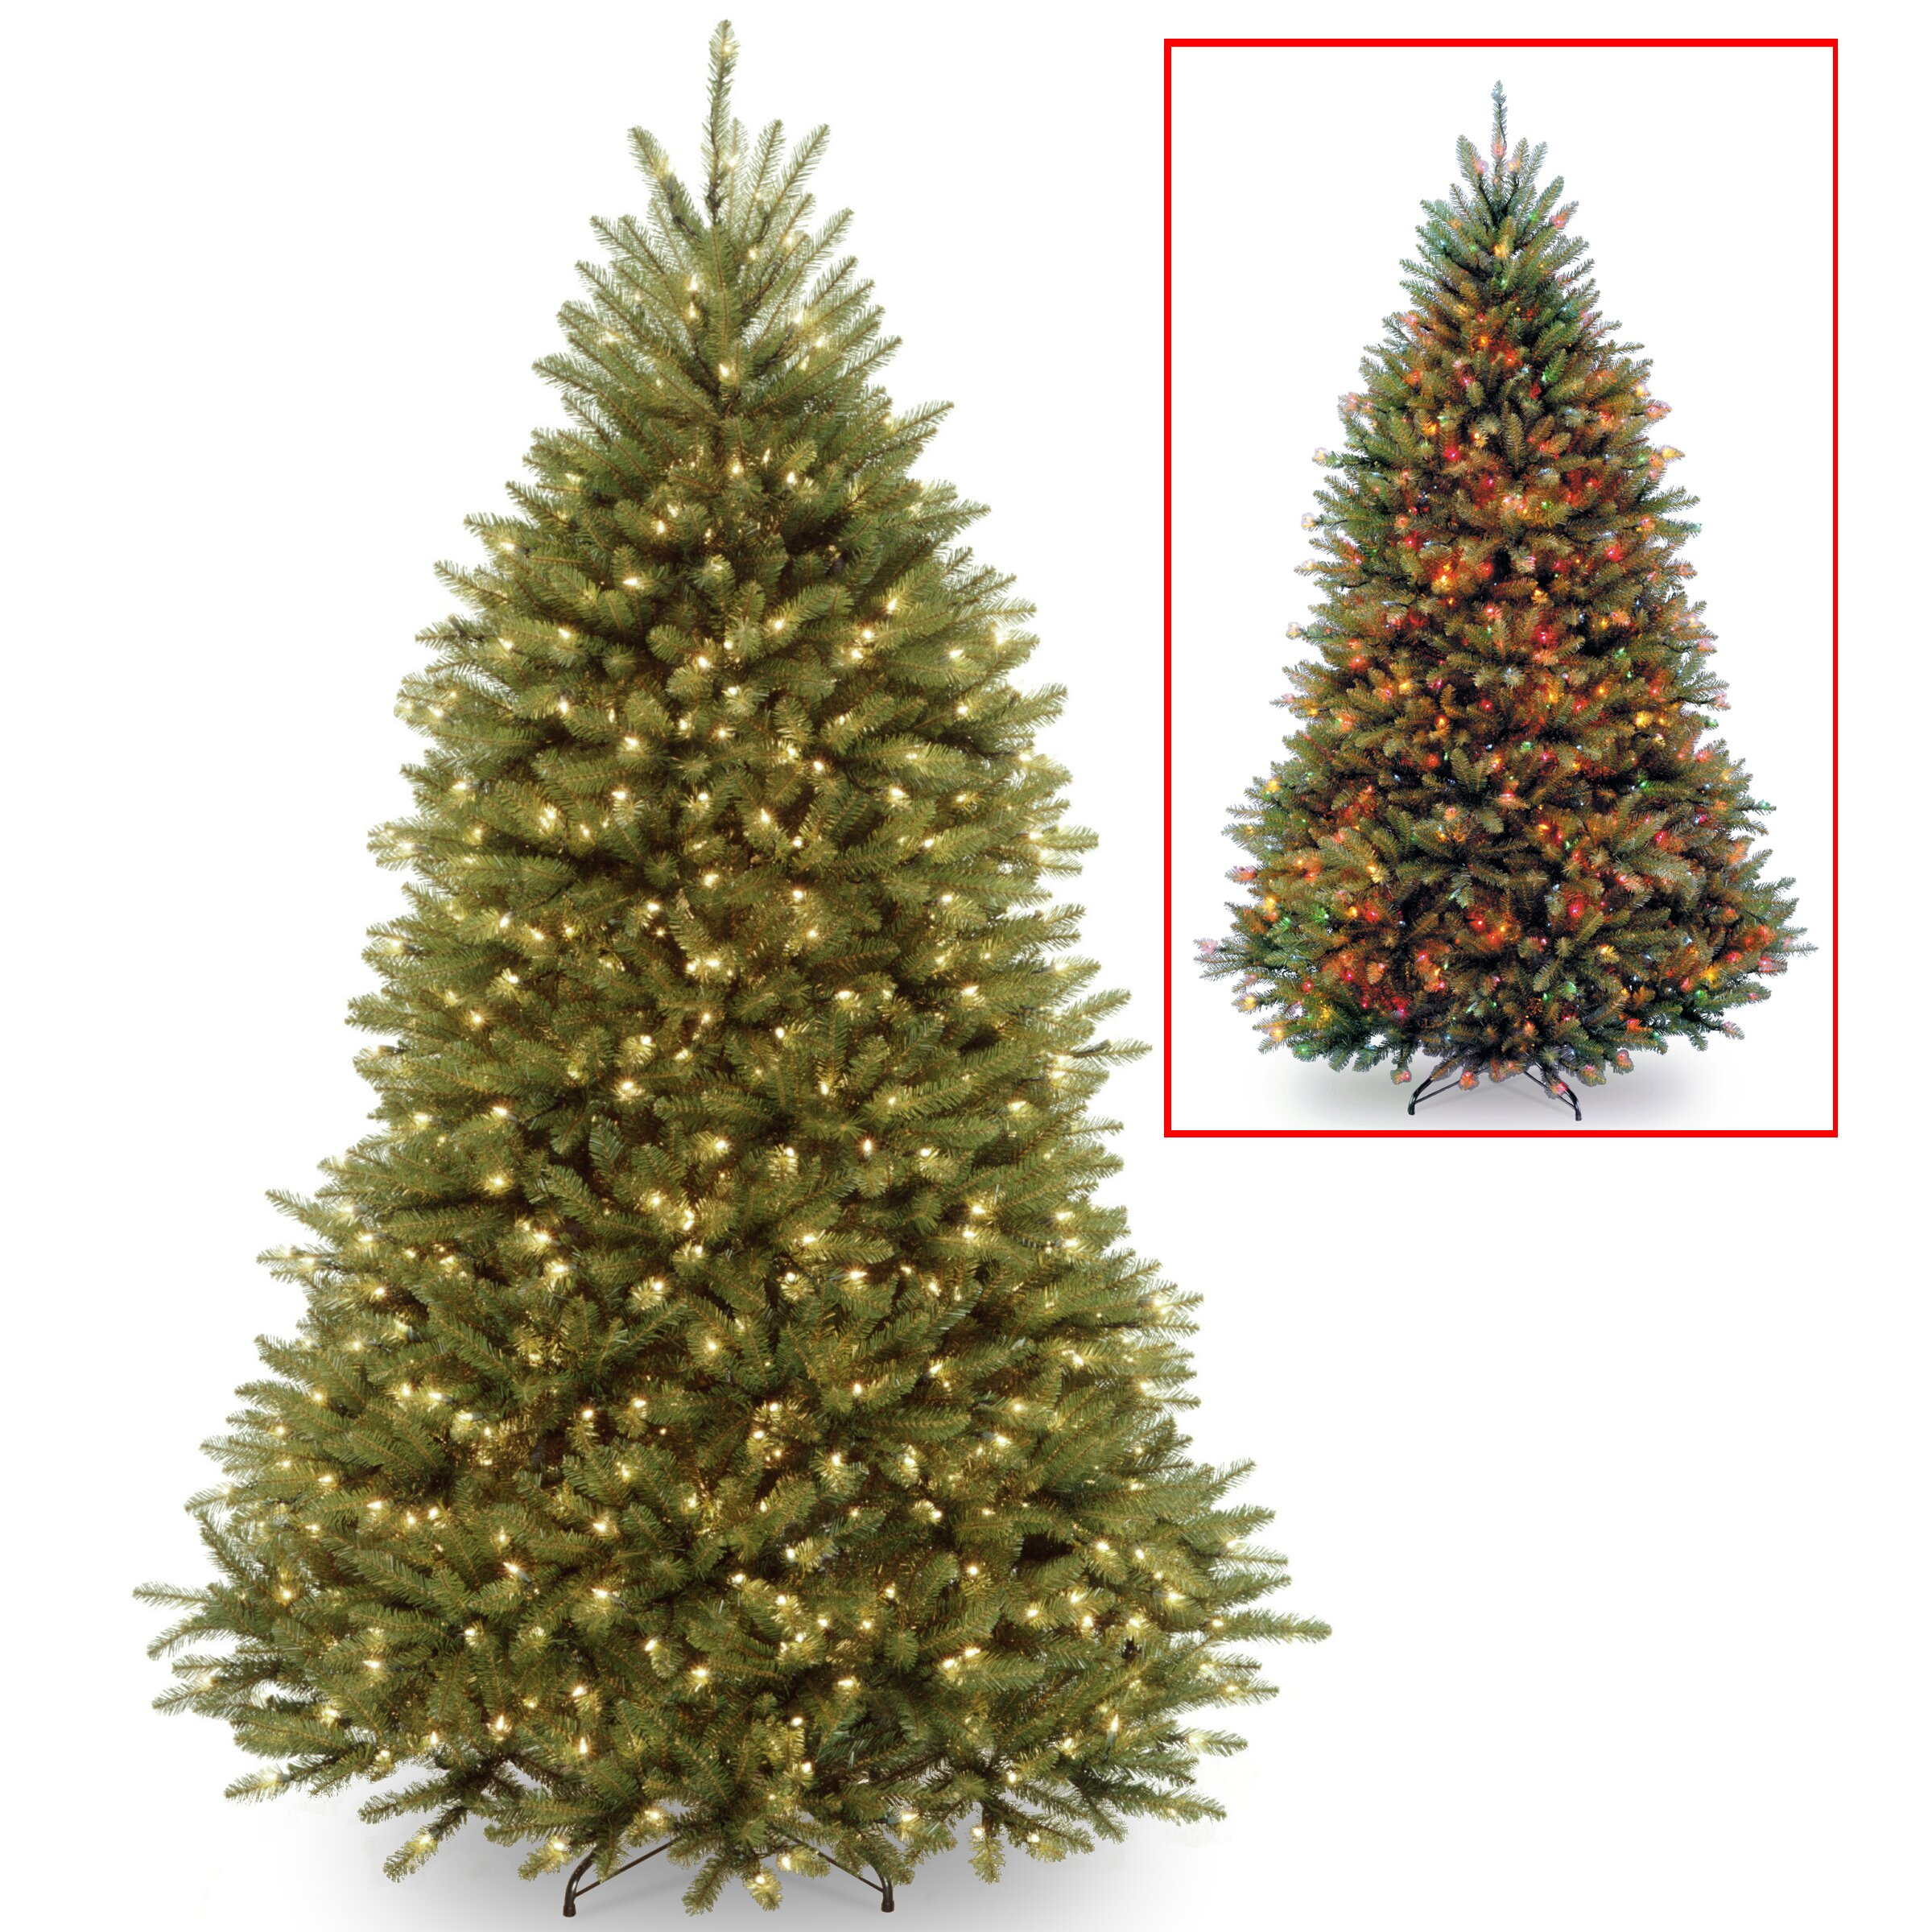 National Tree Co Dunhill 7 5 39 Green Fir Artificial